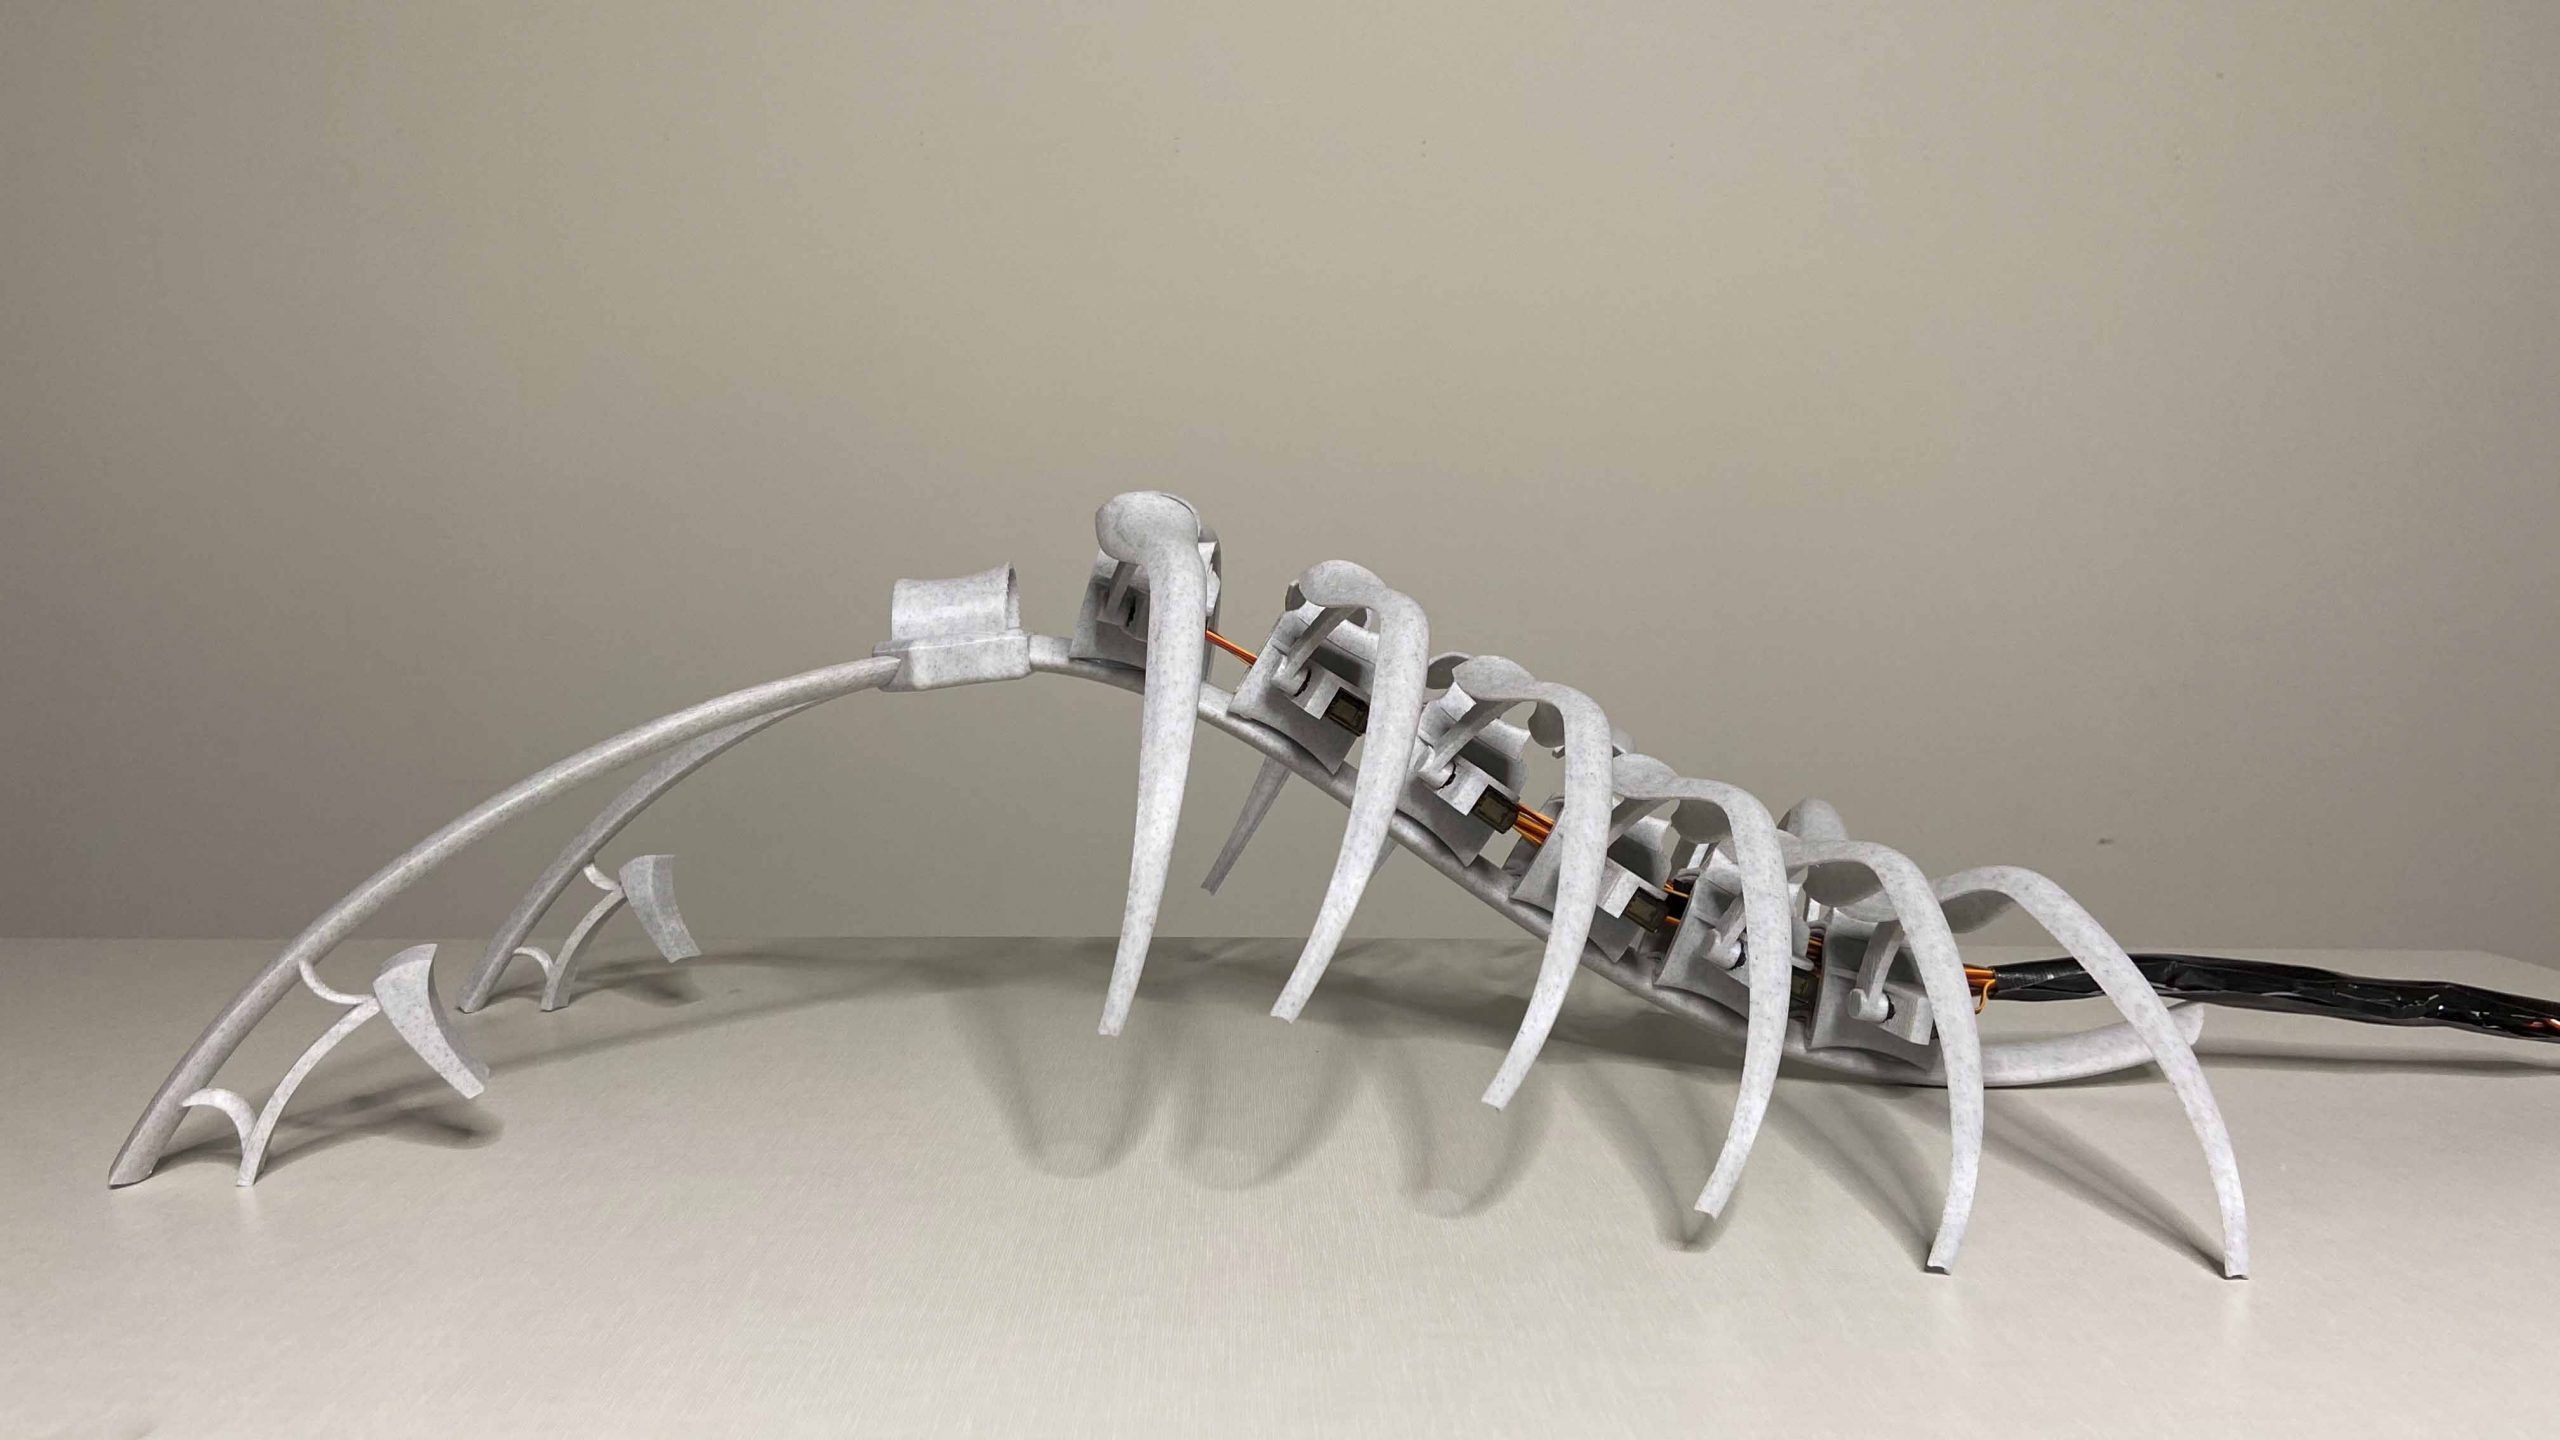 A futuristic robot wearable. A spine and rib-like structure is laid out on table showing the side view.